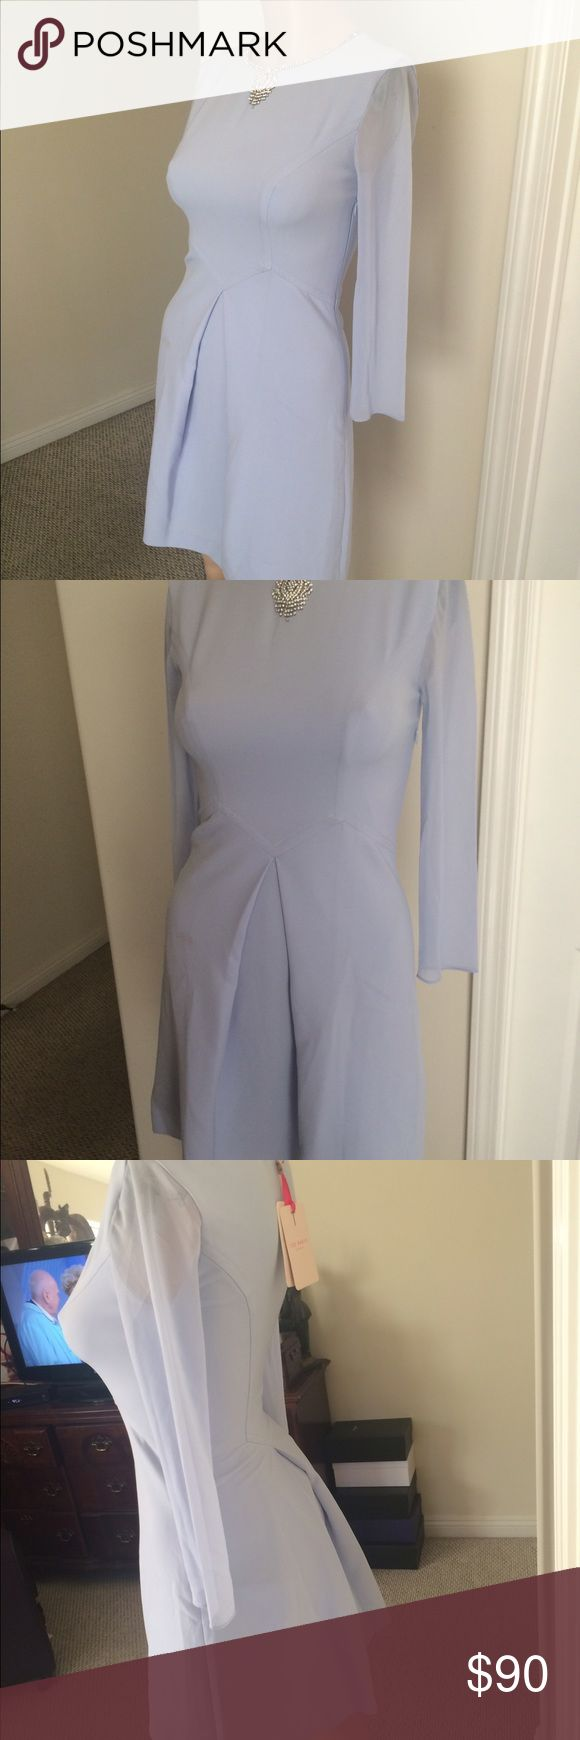 Ted Baker Dress NWT Light Blue Night Out Dress Ted Baker Dresses Long Sleeve